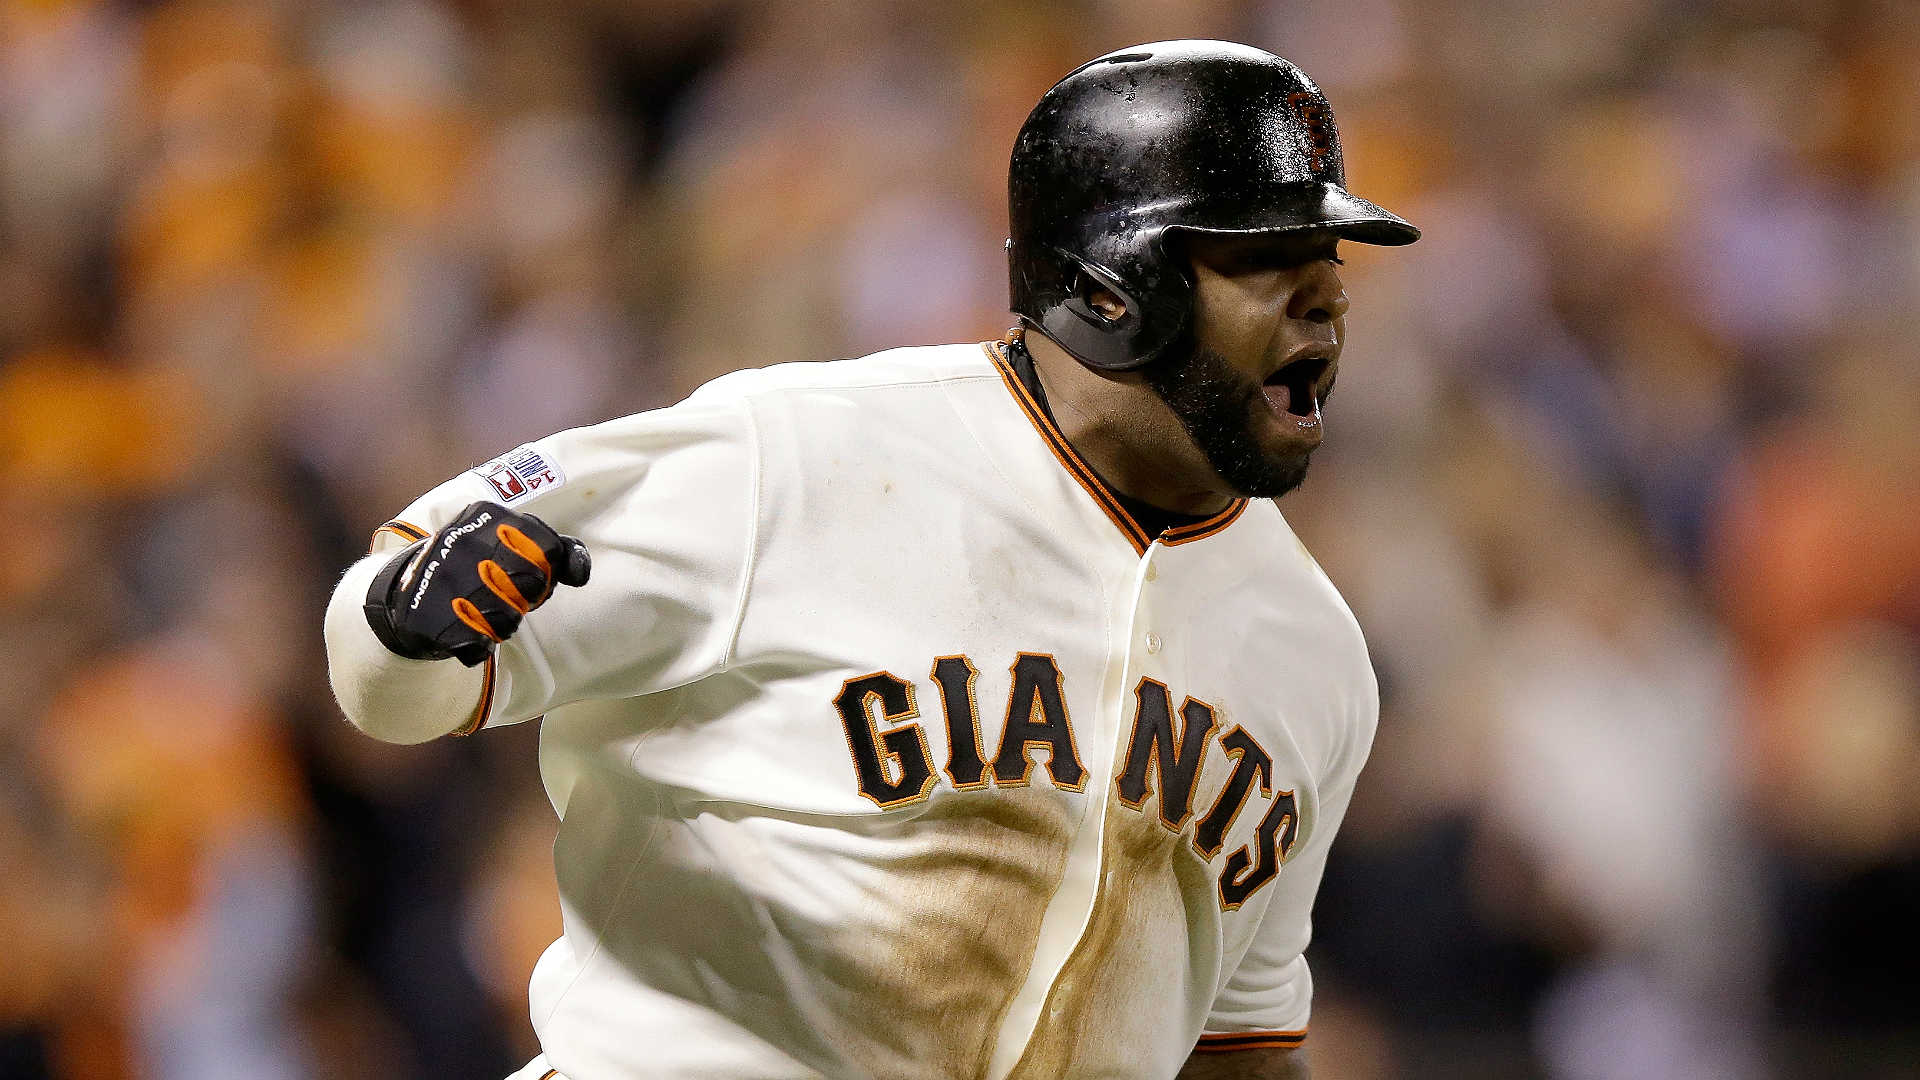 Boston Red Sox acquire Eduardo Nunez from San Francisco Giants